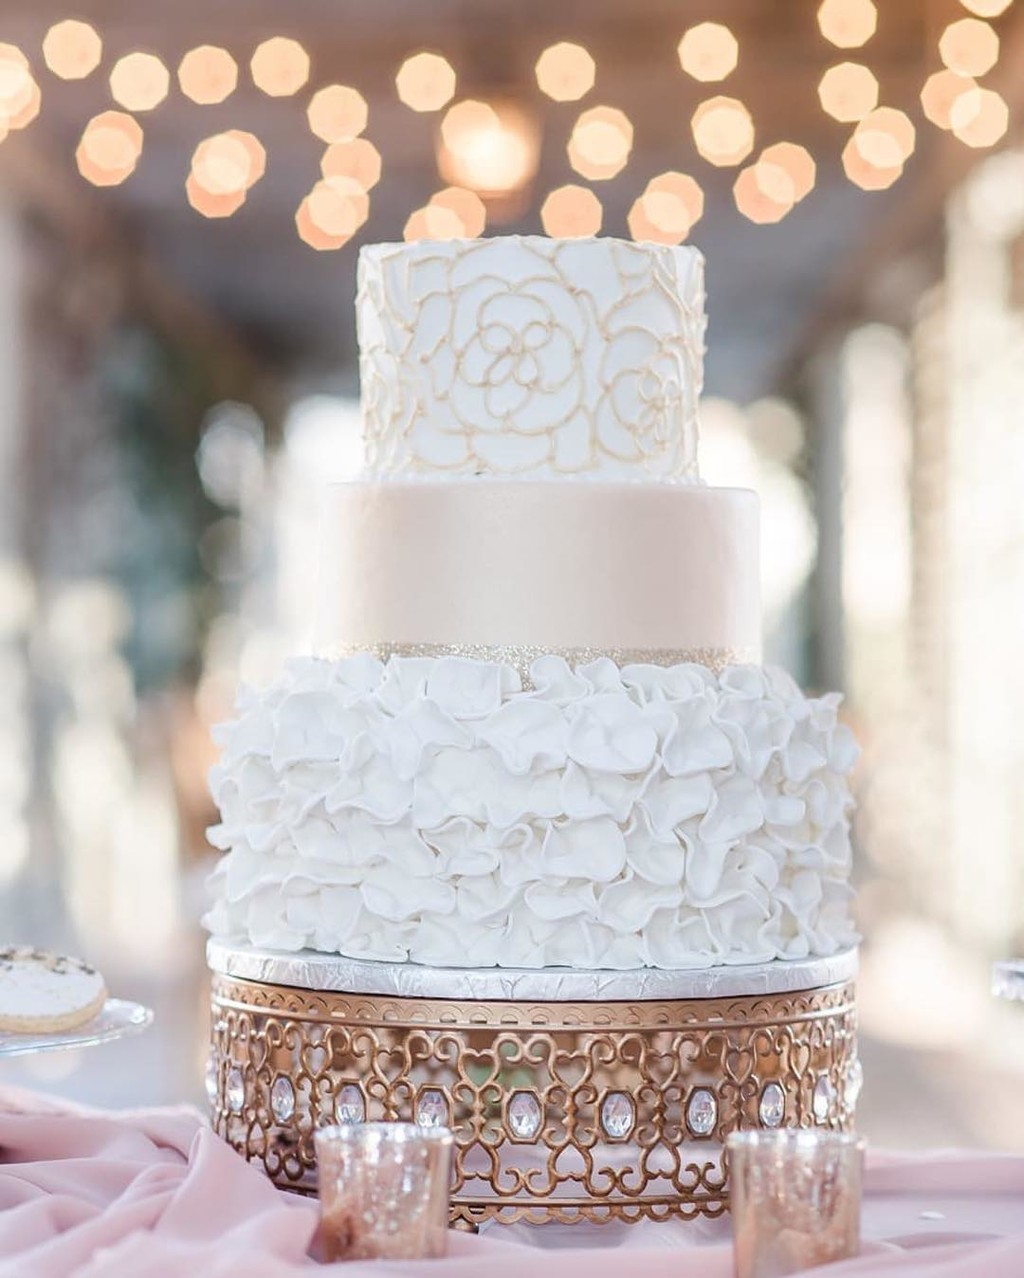 Our Moroccan Jeweled Cake Stand was featured on @weddingchicks